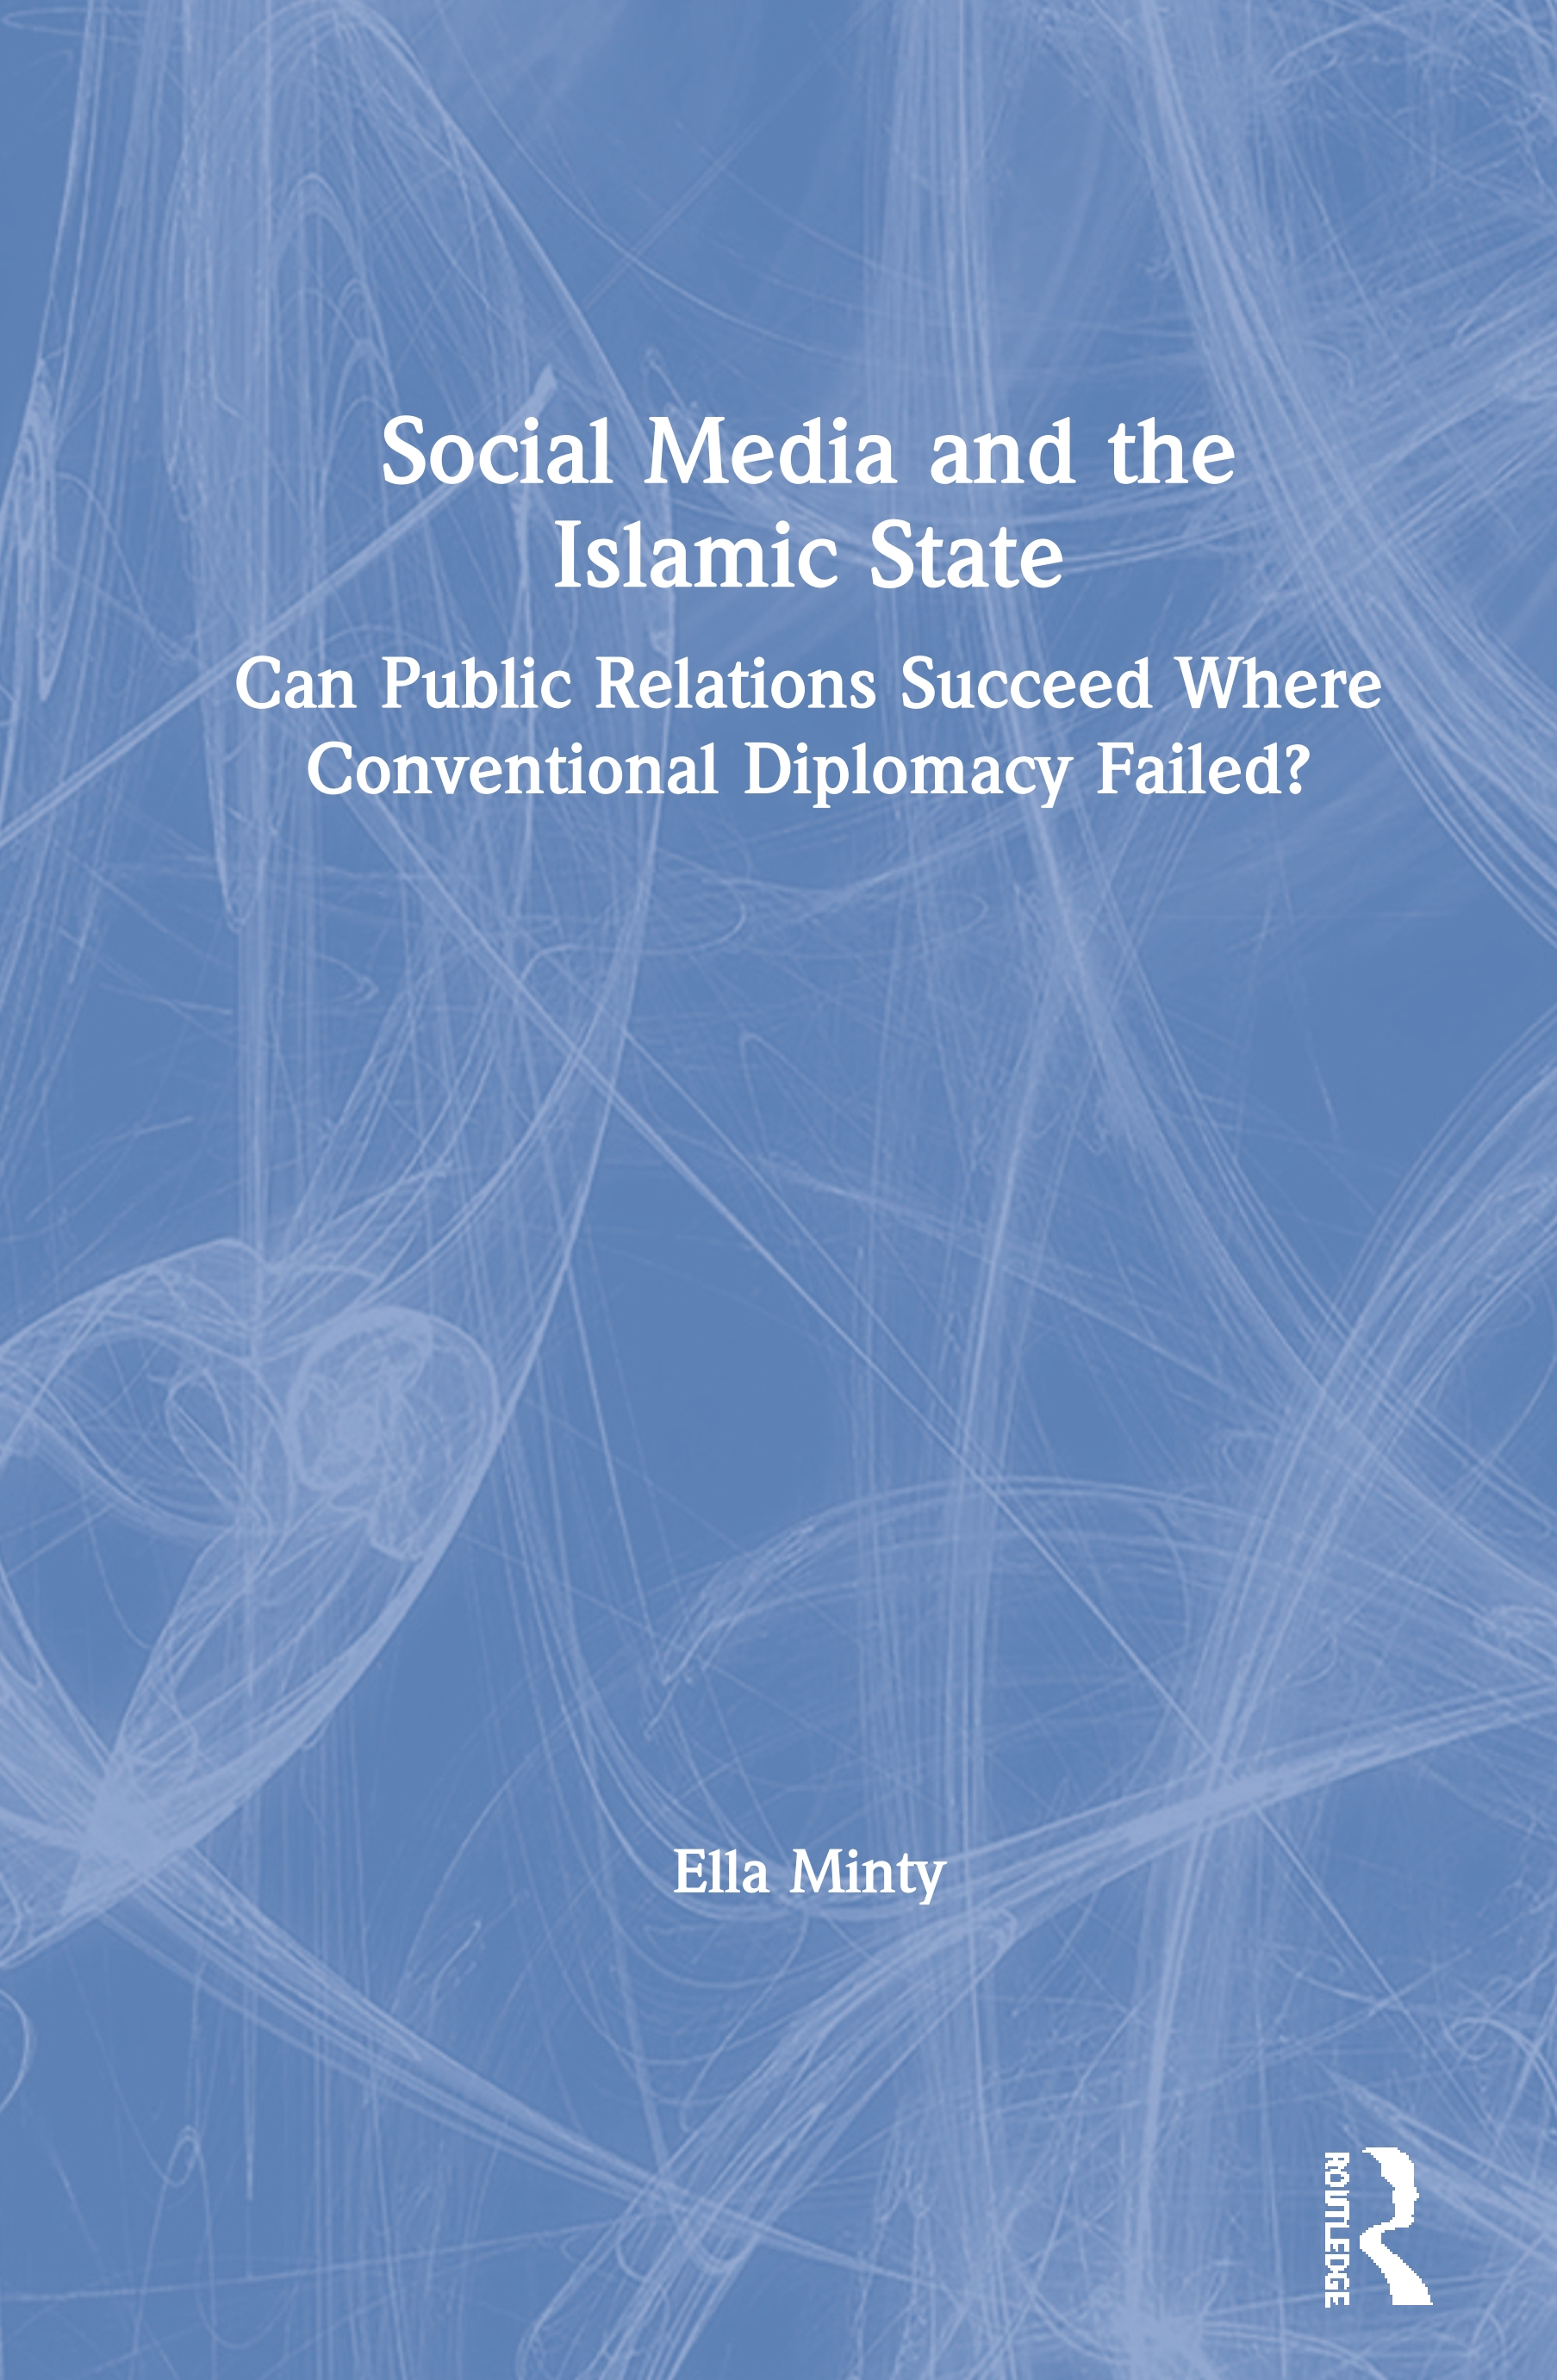 Social Media and the Islamic State: Can Public Relations Succeed Where Conventional Diplomacy Failed? book cover